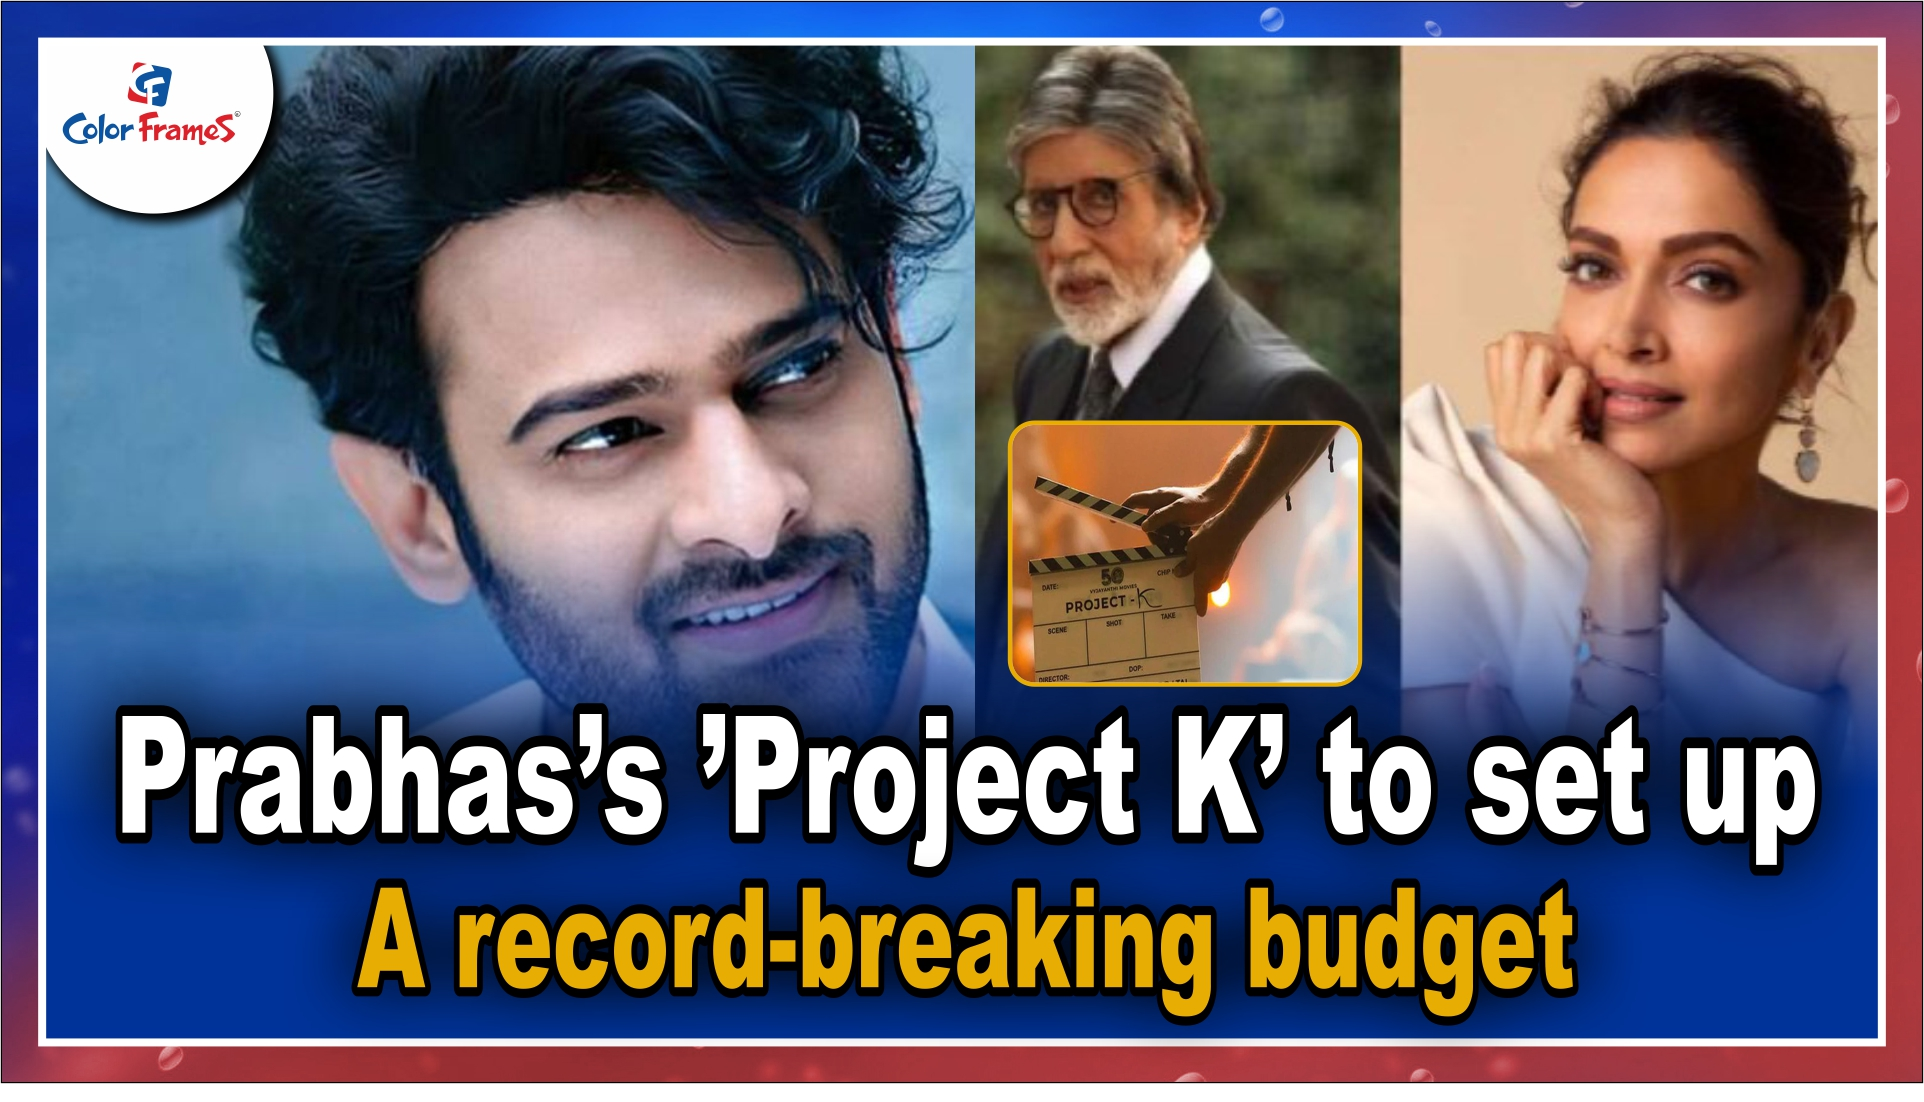 Prabhas's 'Project K' to set up a record-breaking budget.